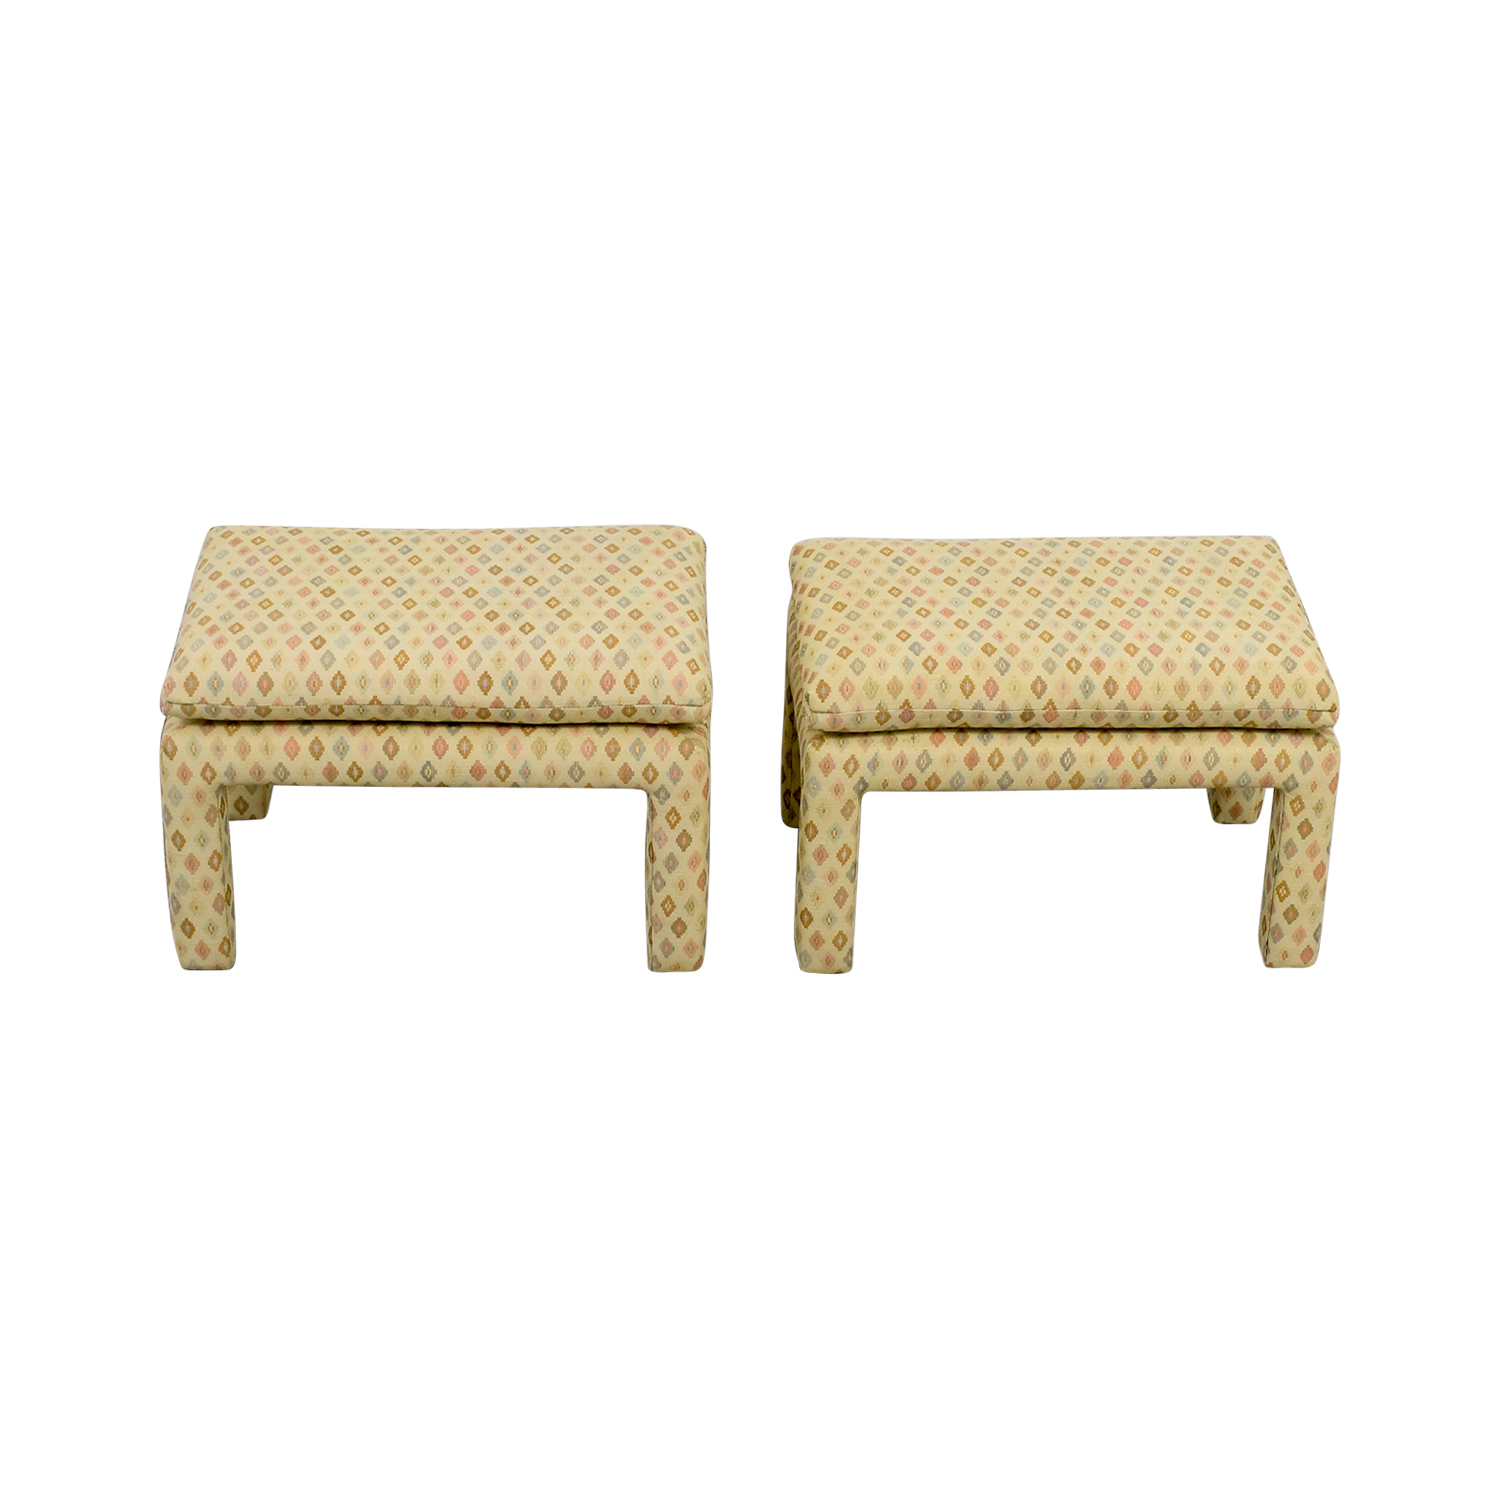 Beige Multi-Colored Upholstered Footstools second hand